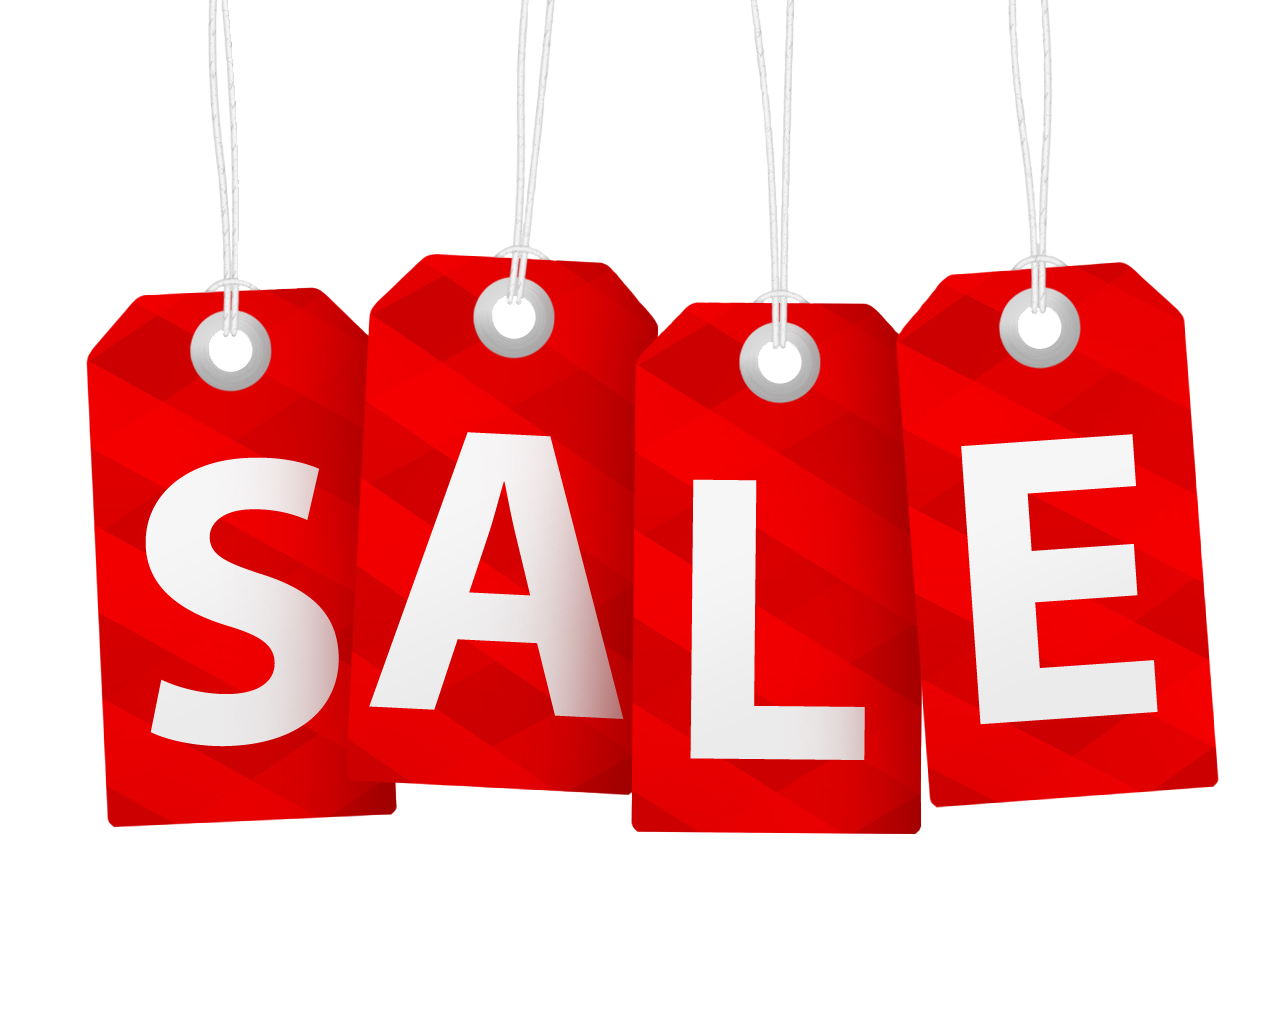 Red tag sale png. Hd transparent images pluspng